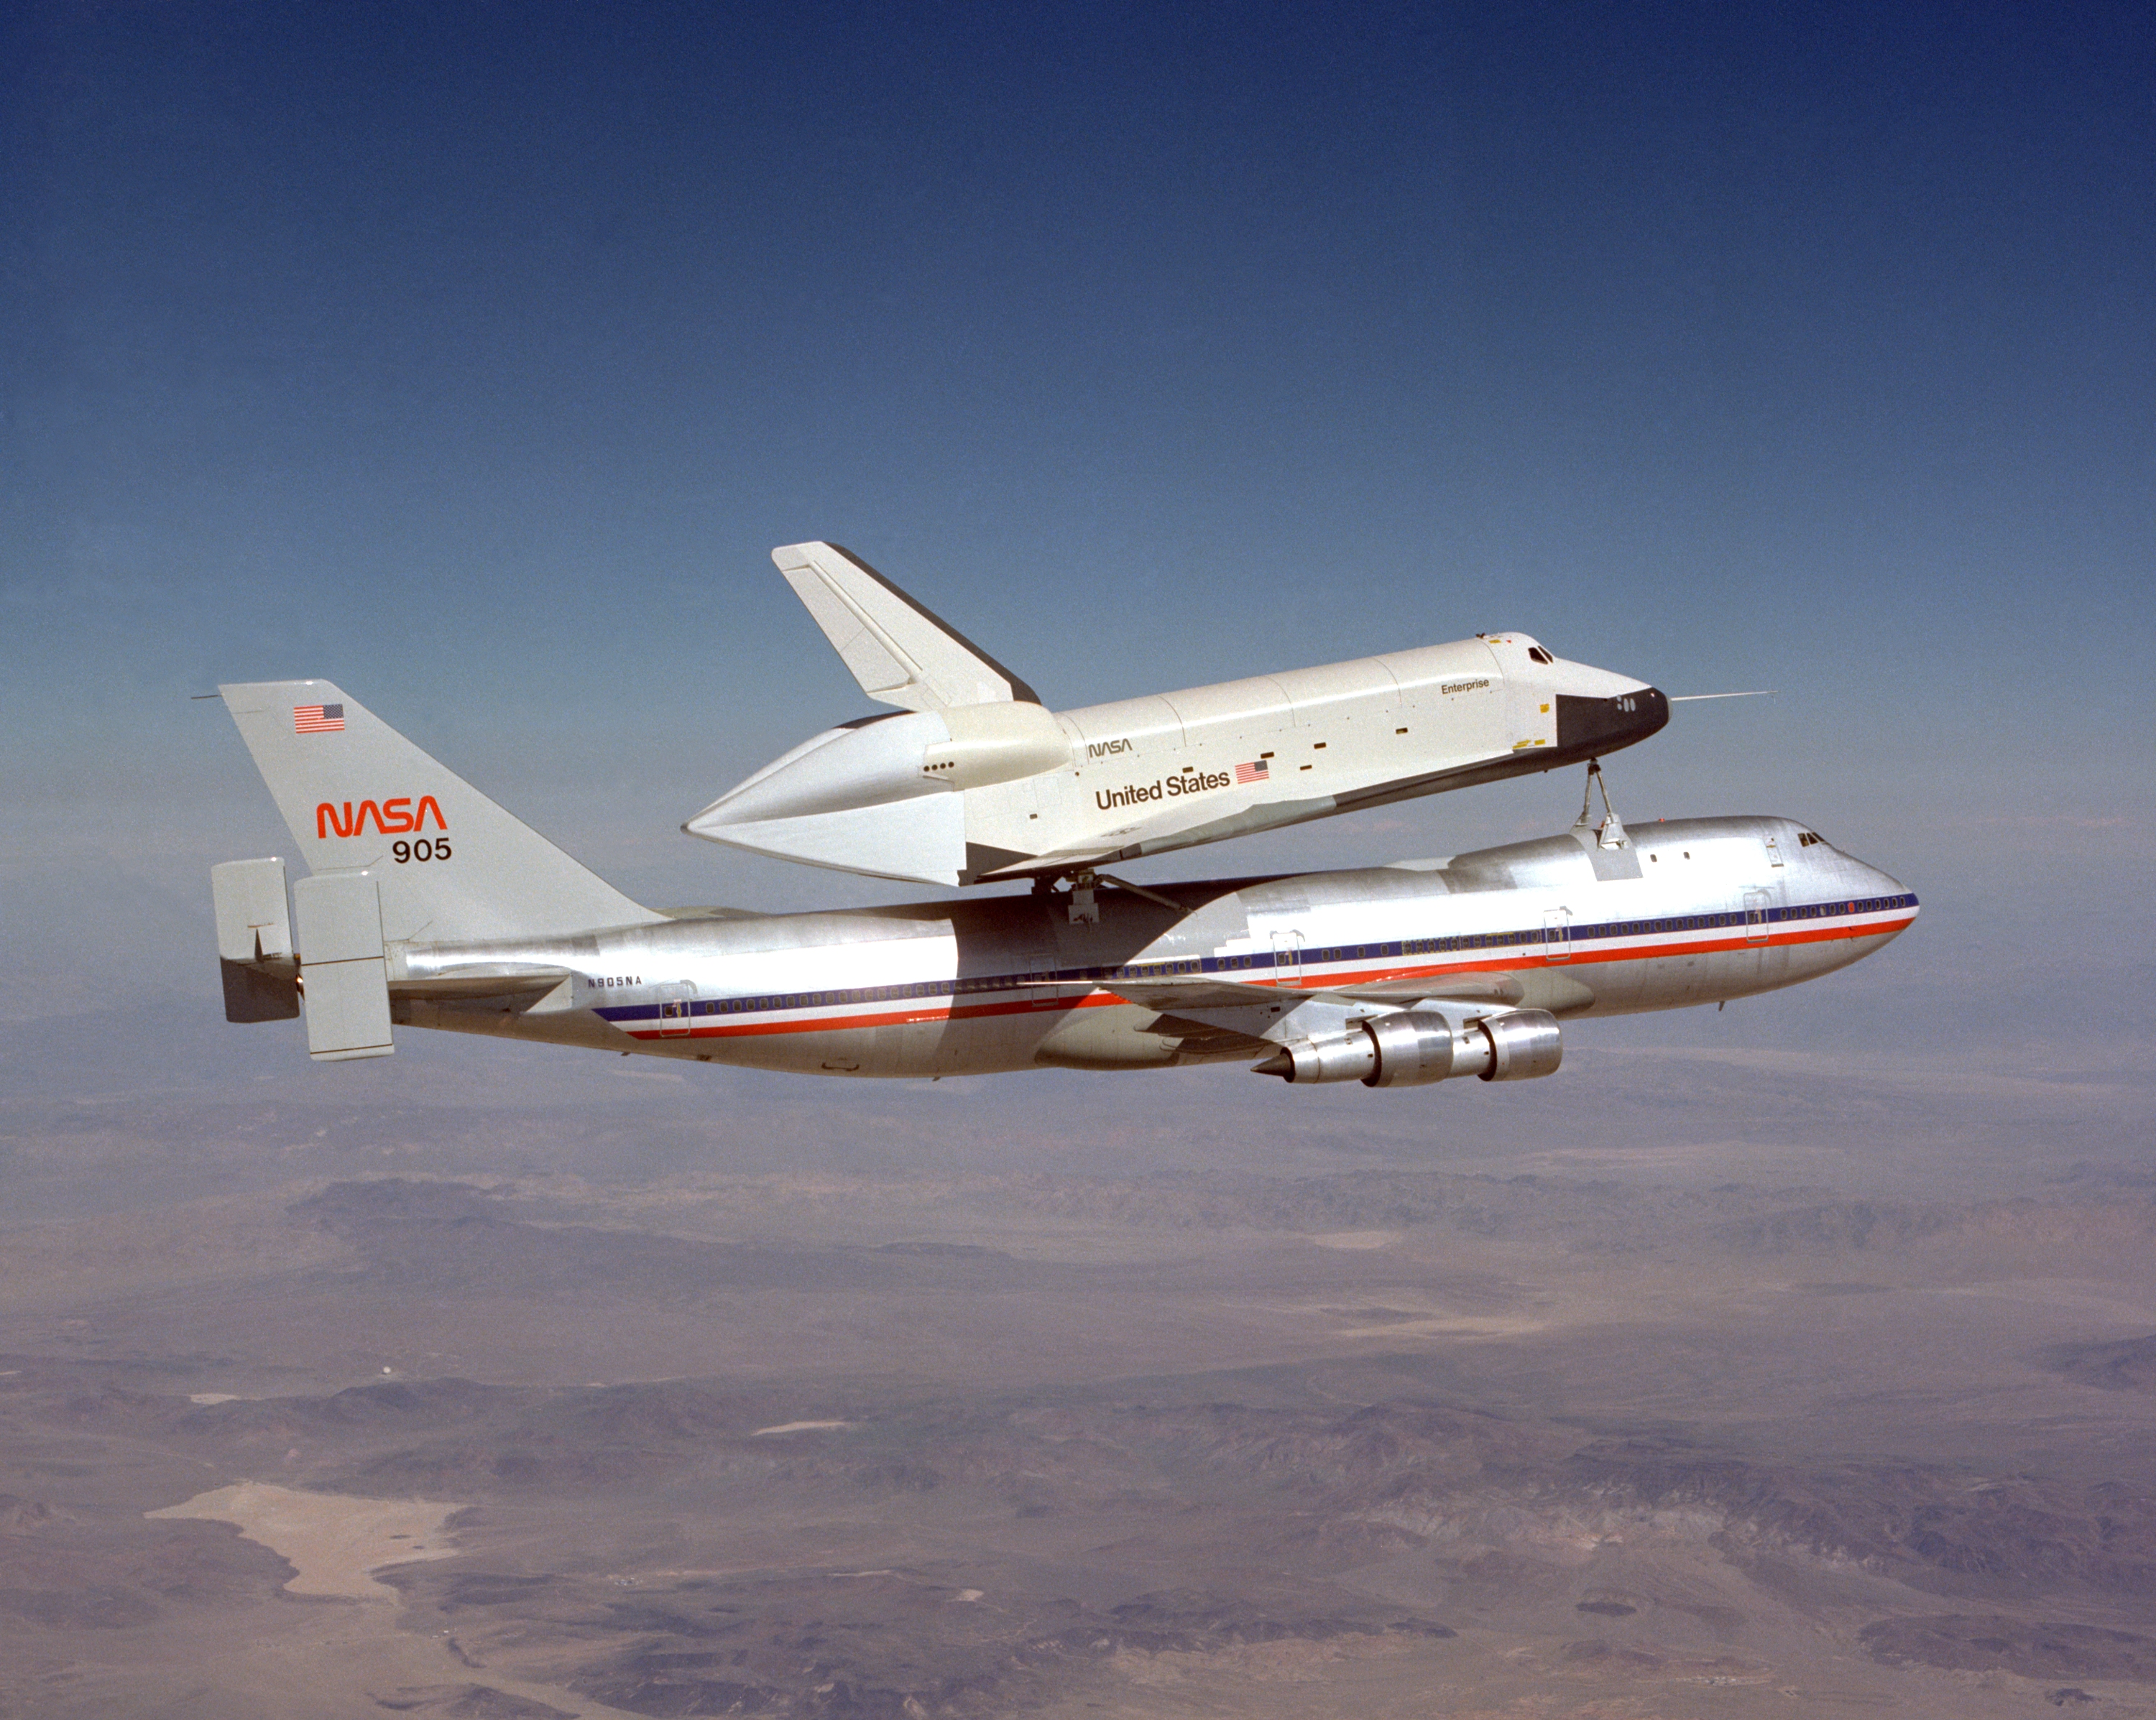 nasa 905 transport - photo #47